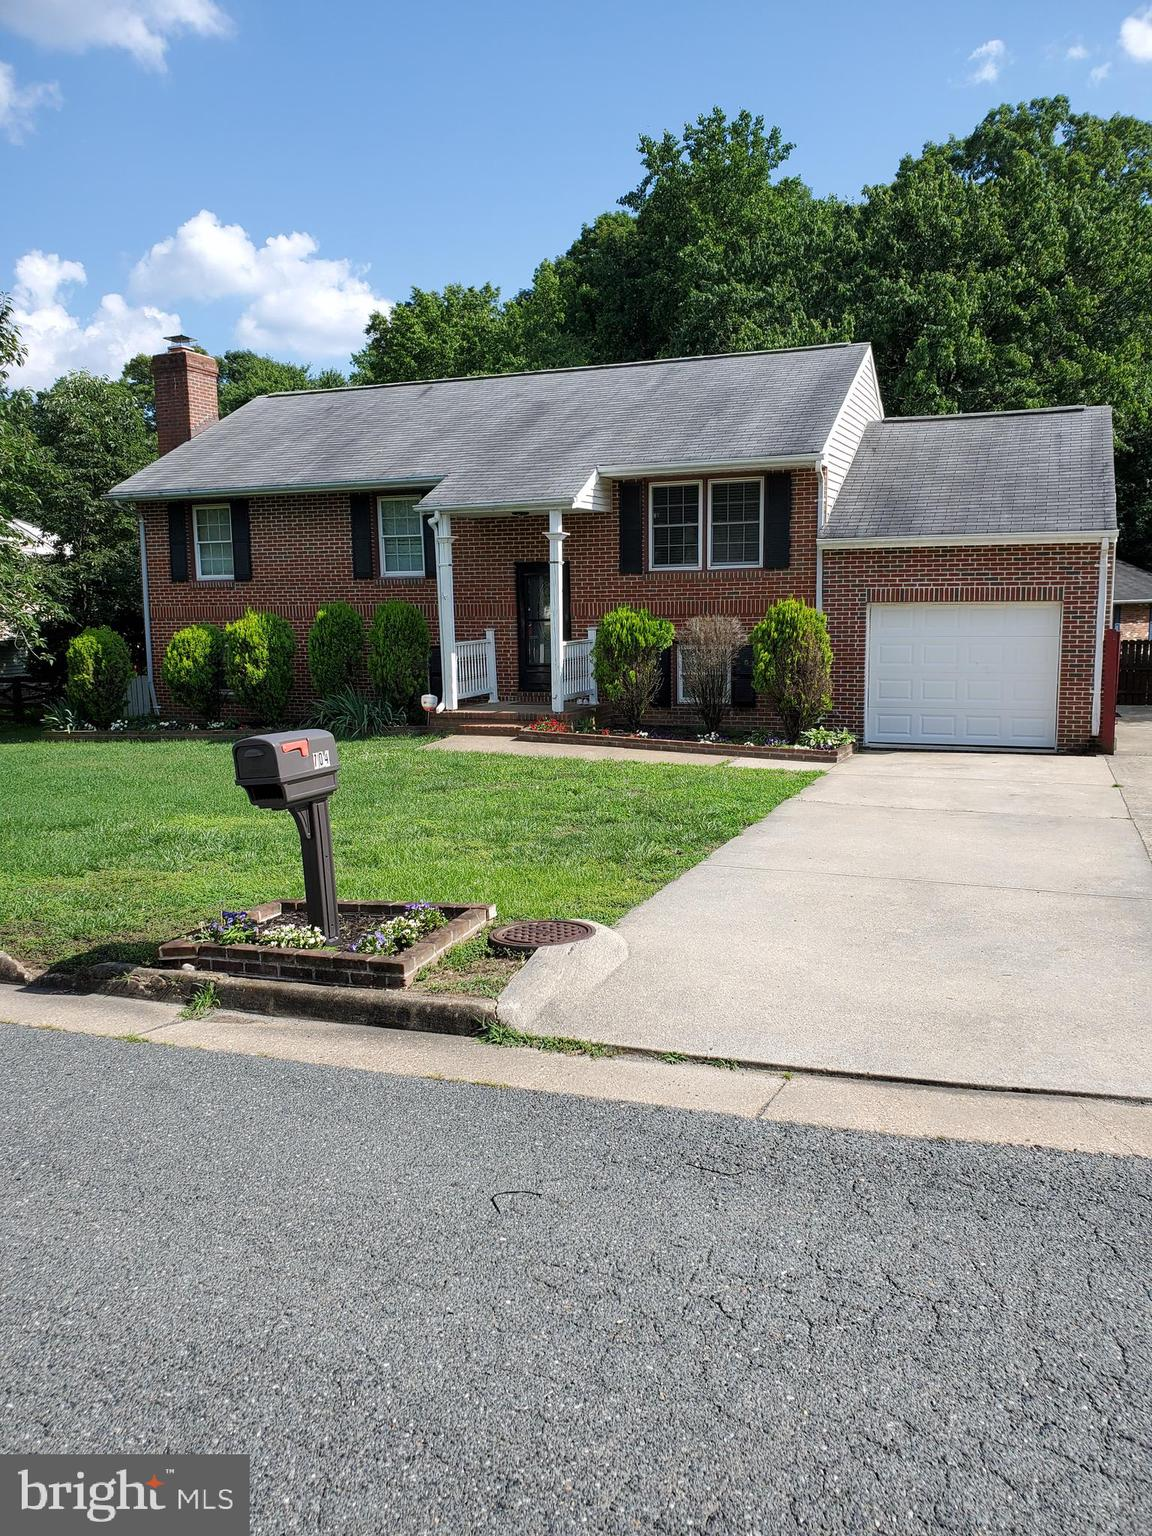 Wonderful opportunity for either owner occupant or investor. This brick 5 bedroom 3 bath home located in Chancellor Green is waiting just for you. Great corner lot with finished lower level basement that includes it's own private kitchenette. Walk out basement level. Updated flooring through out main level and fresh paint. Minutes from I-95, route 1, shopping and restaurants.